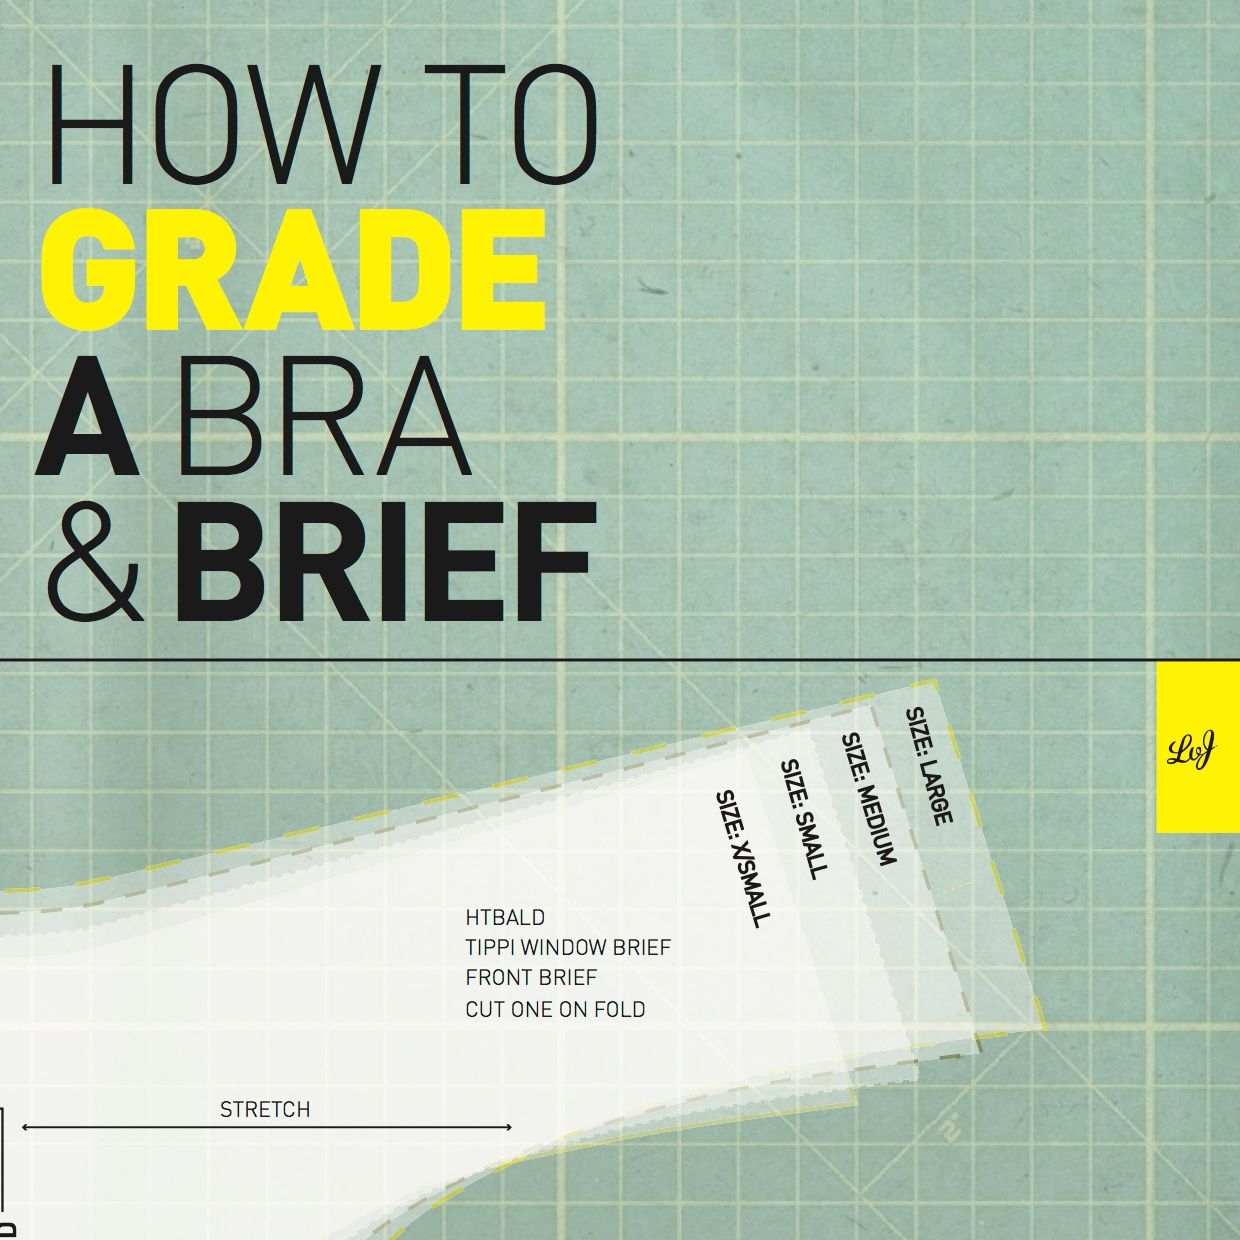 how to grade a bra and brief